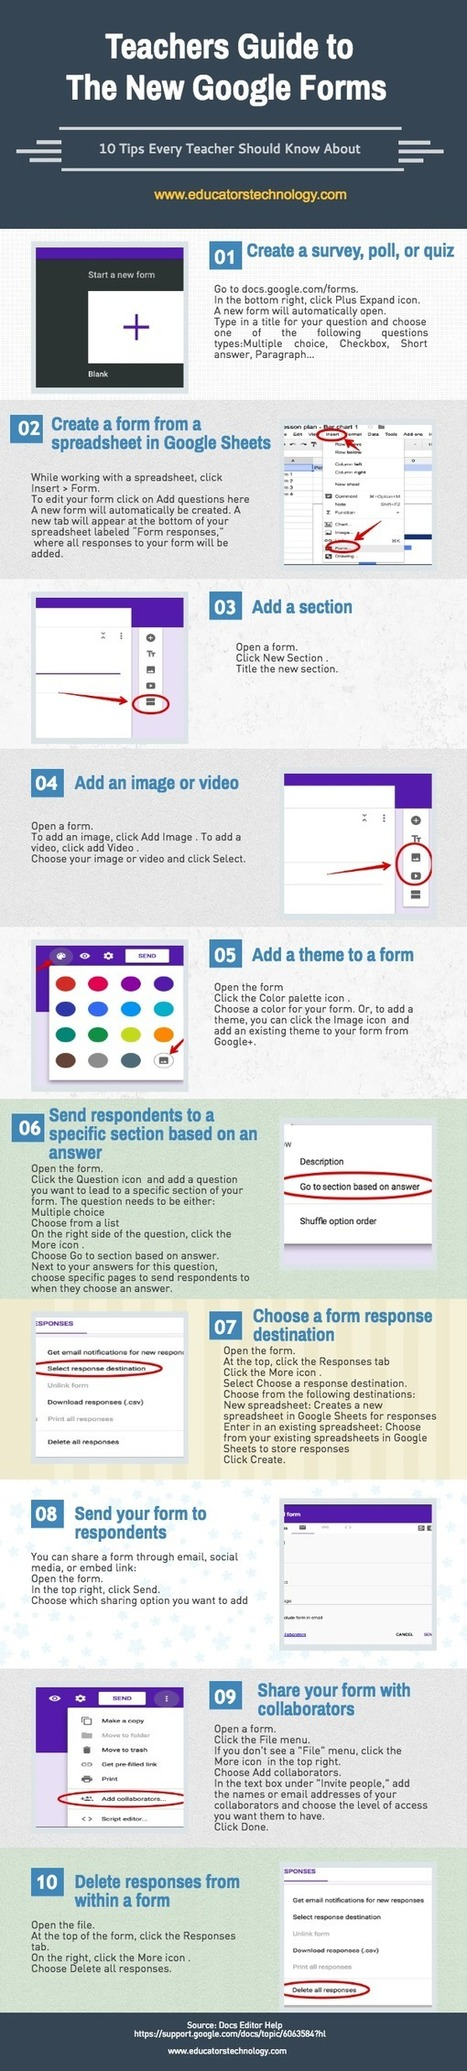 Teachers Visual Guide to The New Google Forms | Using Google Drive in the classroom | Scoop.it